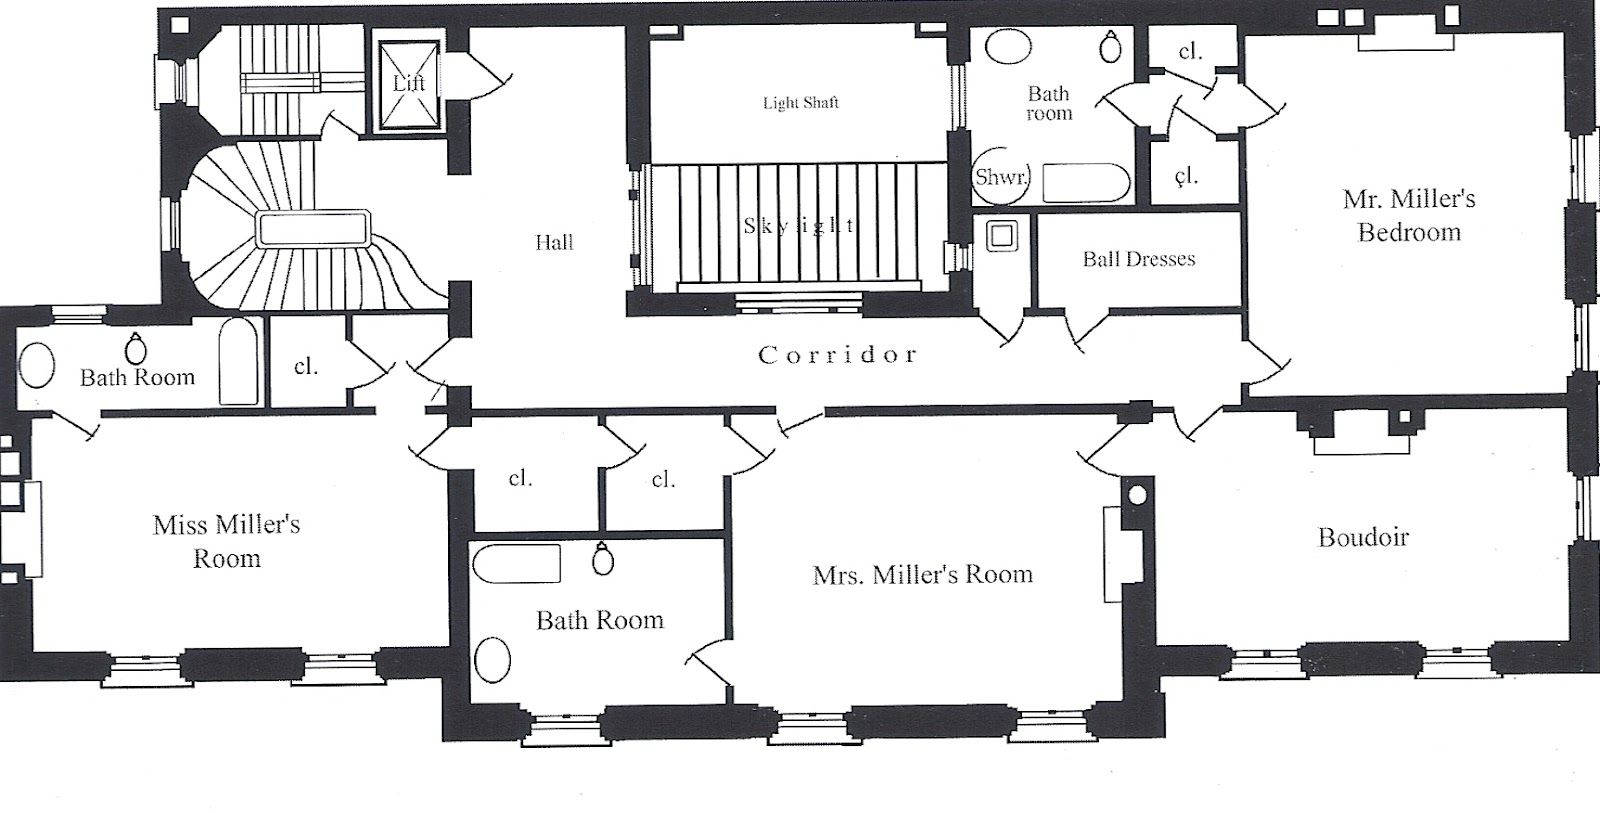 Vanderbilt Commons Floor Plans Vanderbilt Dorm Floor Plans